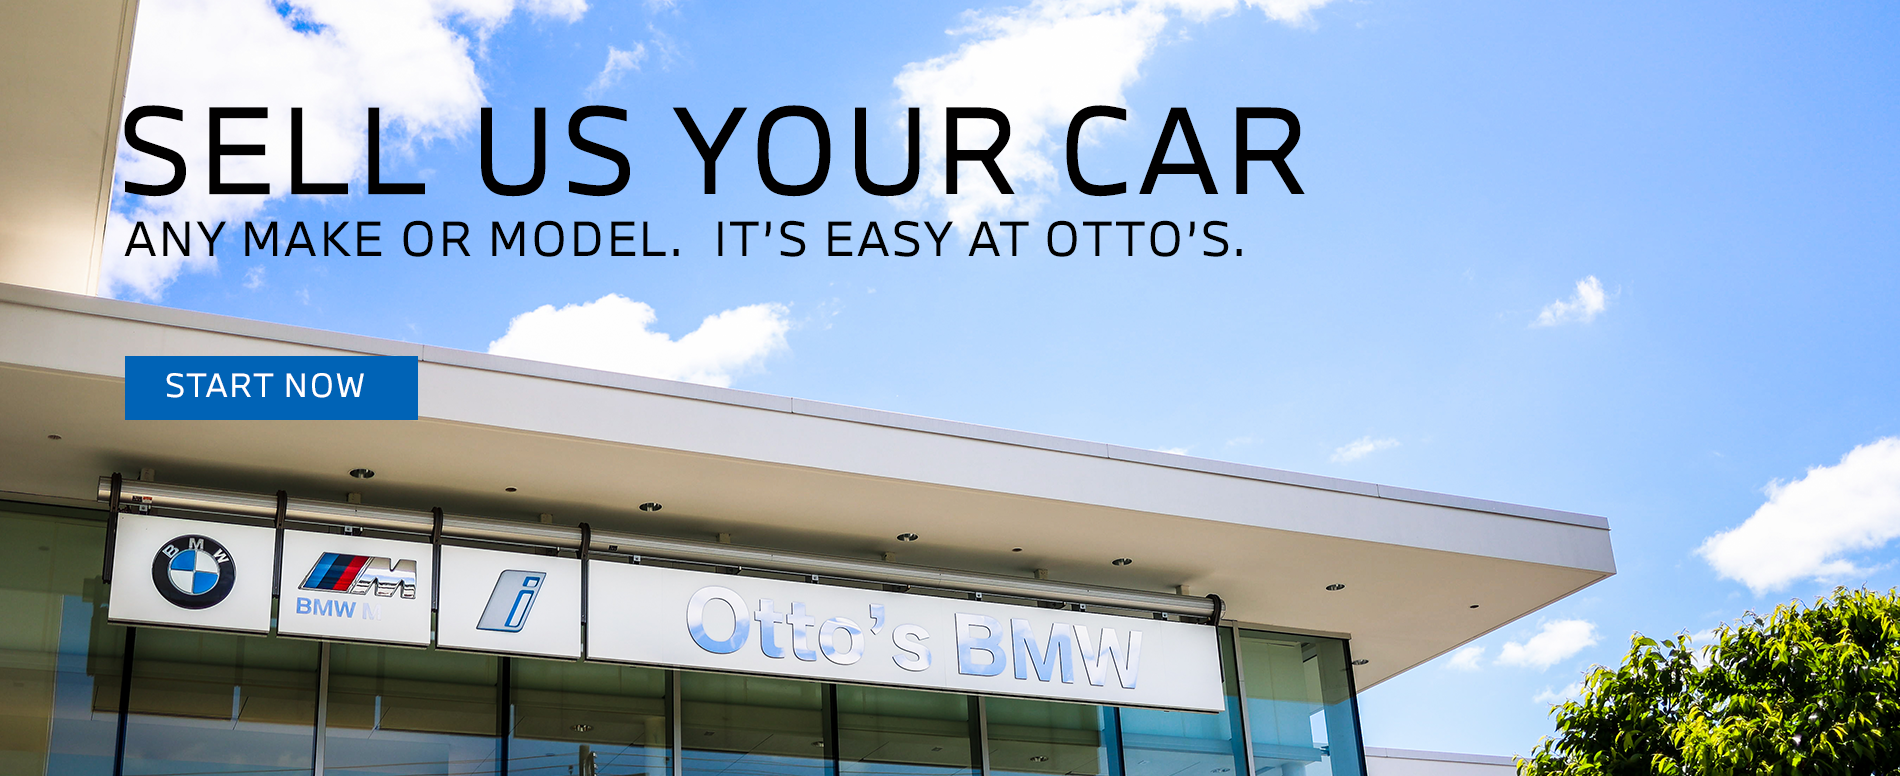 Sell Otto's your car, any make or model, it's easy at Otto's!